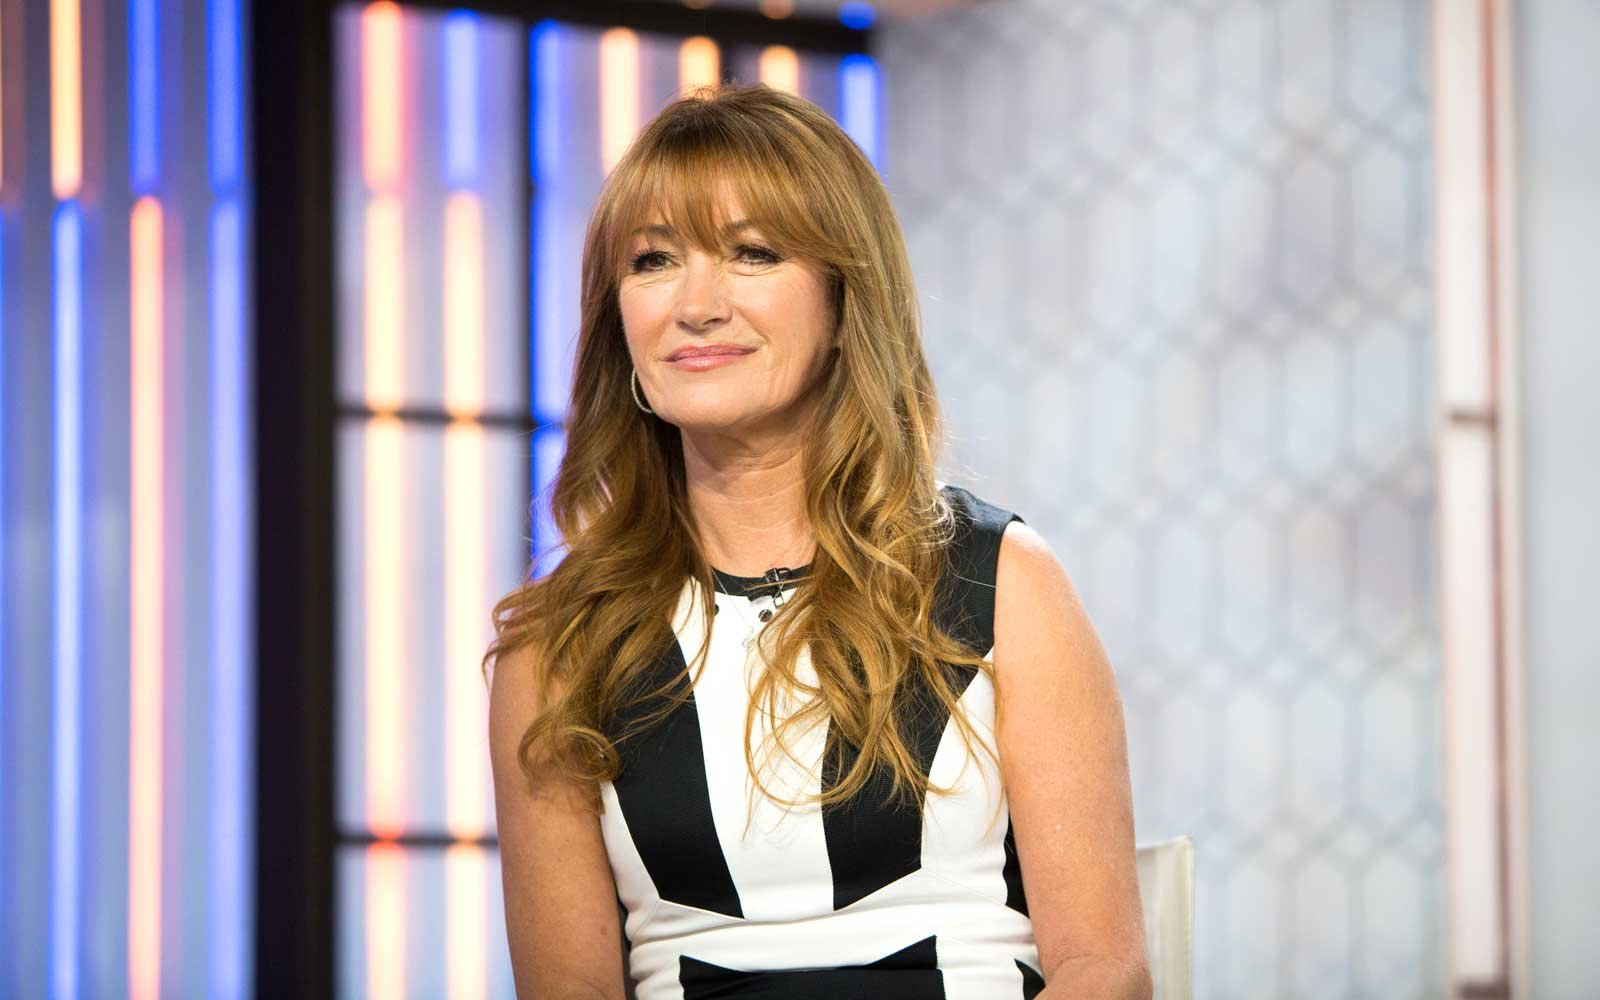 Actress Jane Seymour at the Today show